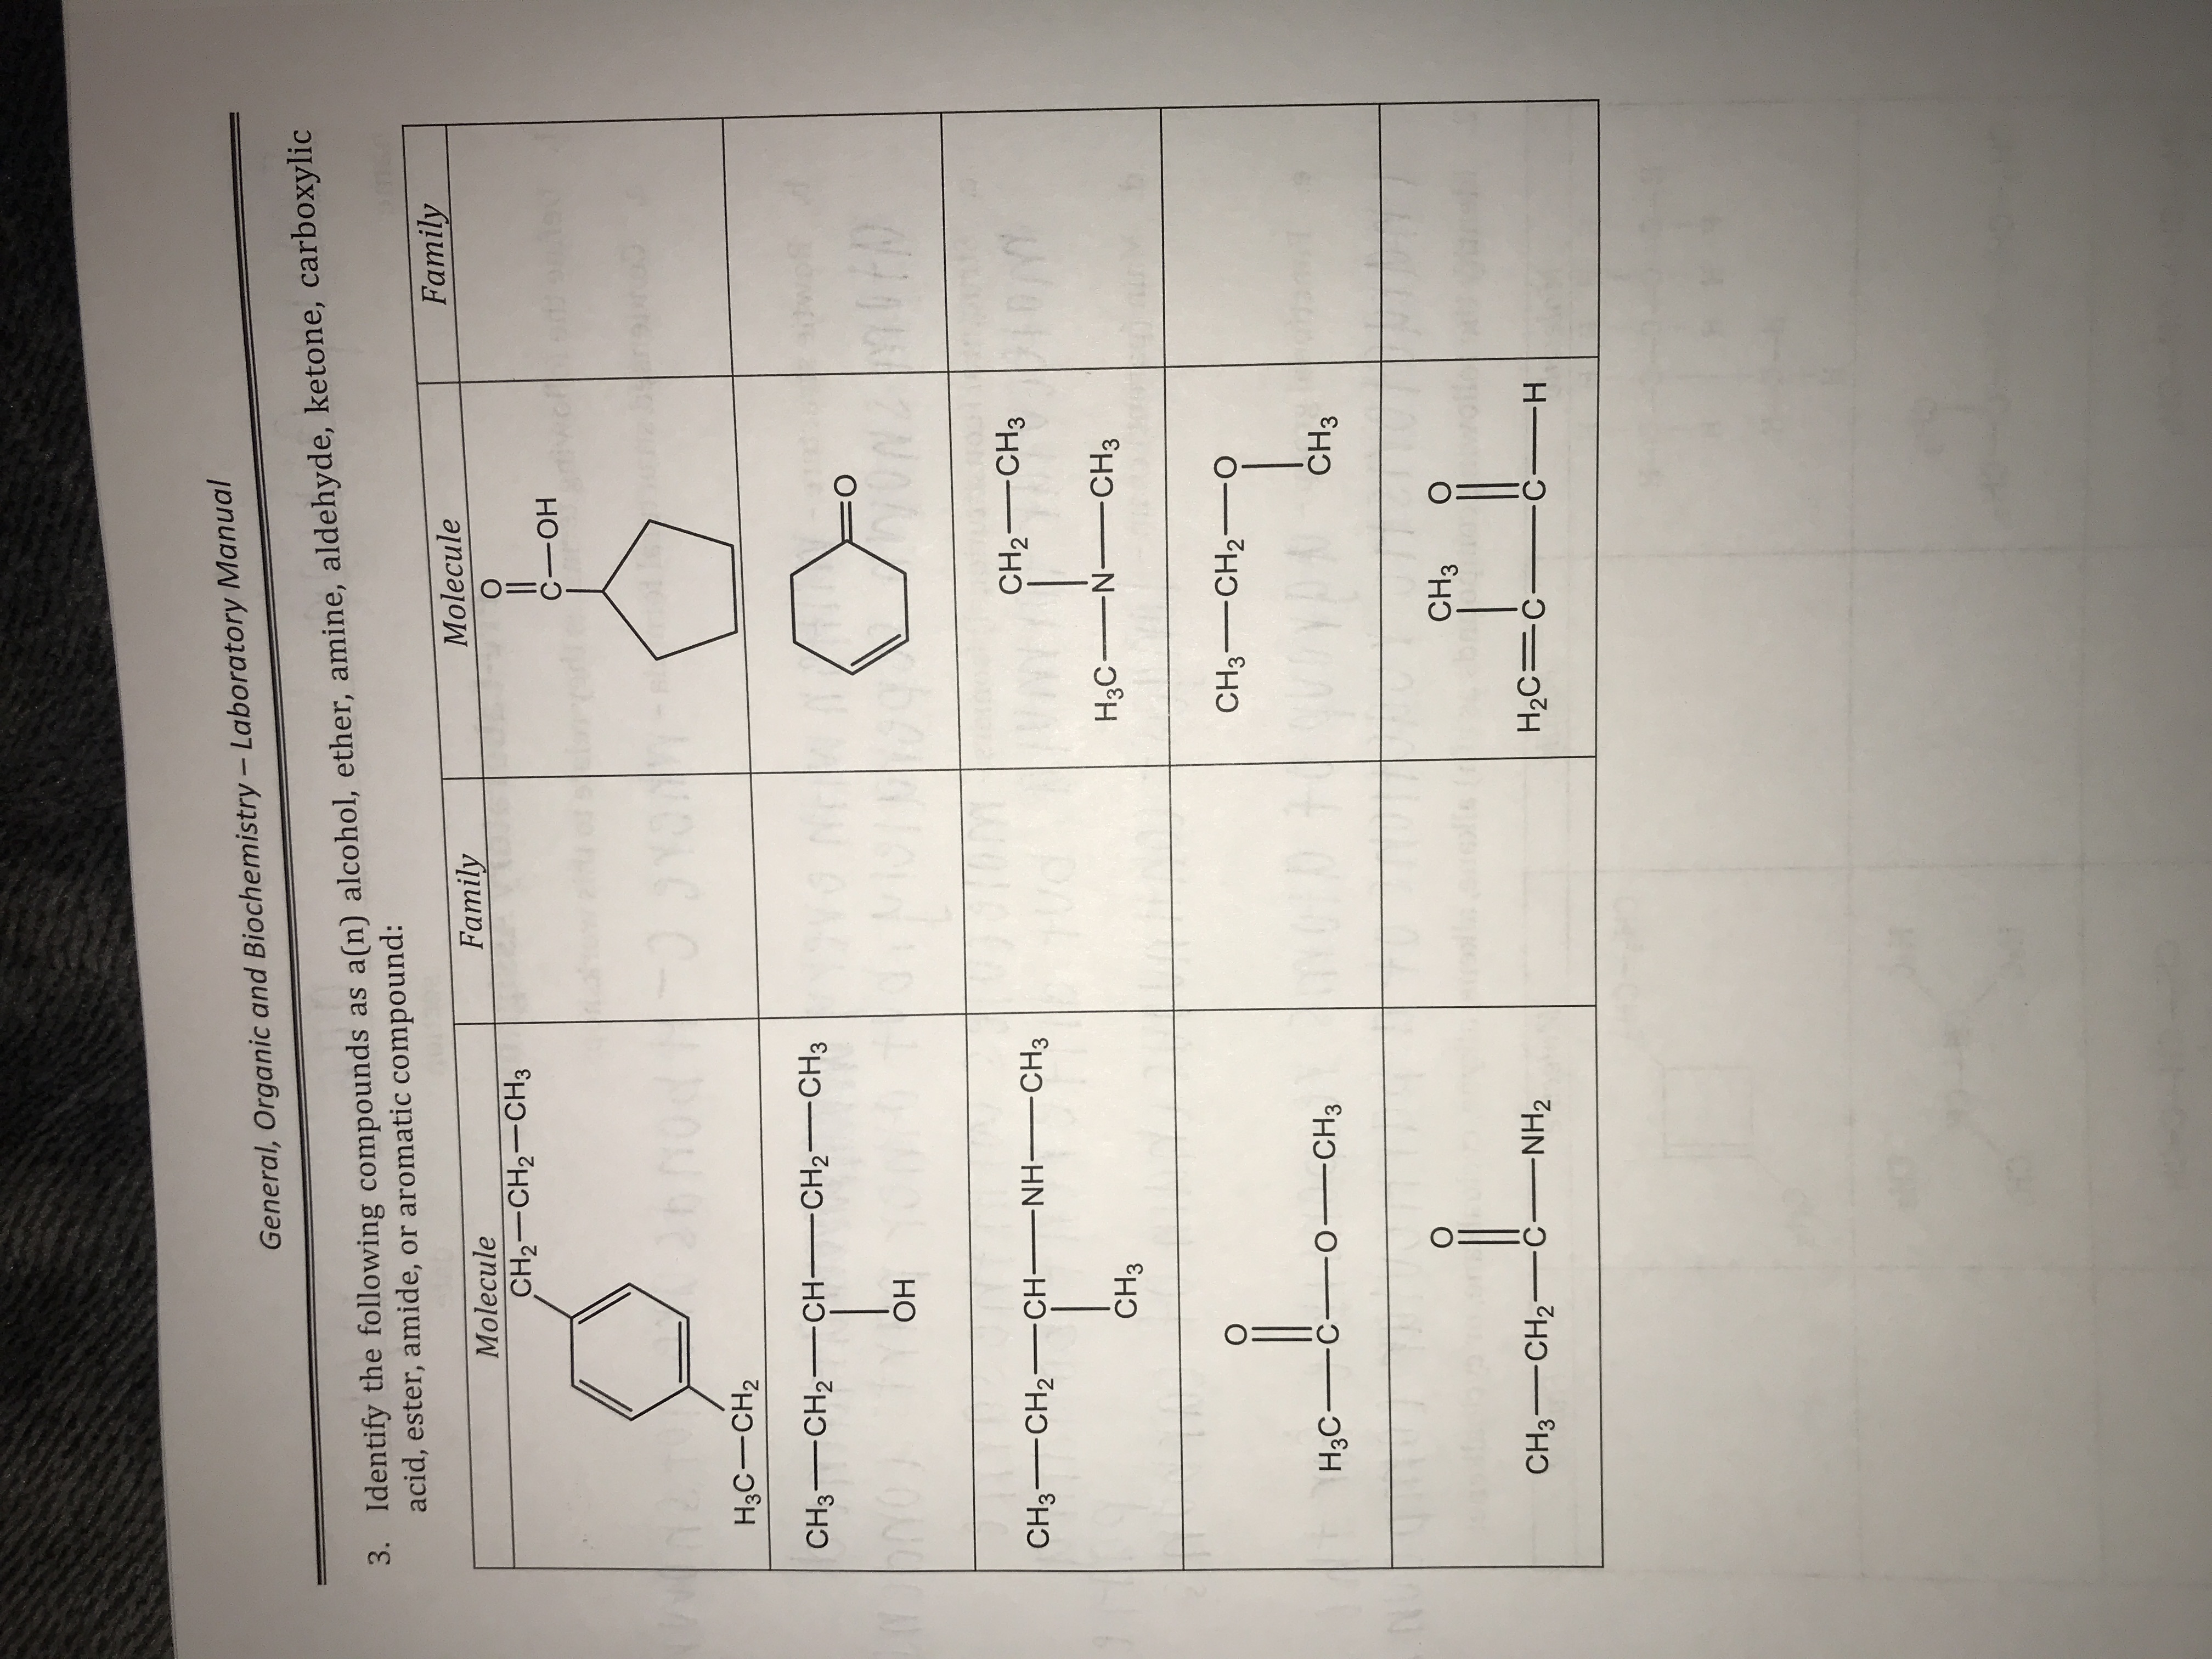 General, Organic and Biochem istry - Laboratory Manual 3. Identify the following compounds as a(n) alcohol, ether, amine, aldehyde, ketone, carboxylic acid, ester, amide, or aromatic compound: Family Molecule Family Molecule О CHа—CH2—CHз С —ОН 2 O 1 Io 107 Hас — сН2 CH3 CH2CH-CH2-- CH3 10 N =O VVNZMIED ОН CH2CH3 Om CH3 CH2-CH-NH CH3 H3C N CH3 CH3 CH3CH2 o 0410 H3C-C O CH3 CH3 о CH3 CH3 CH2 CNH2 H2C C CH